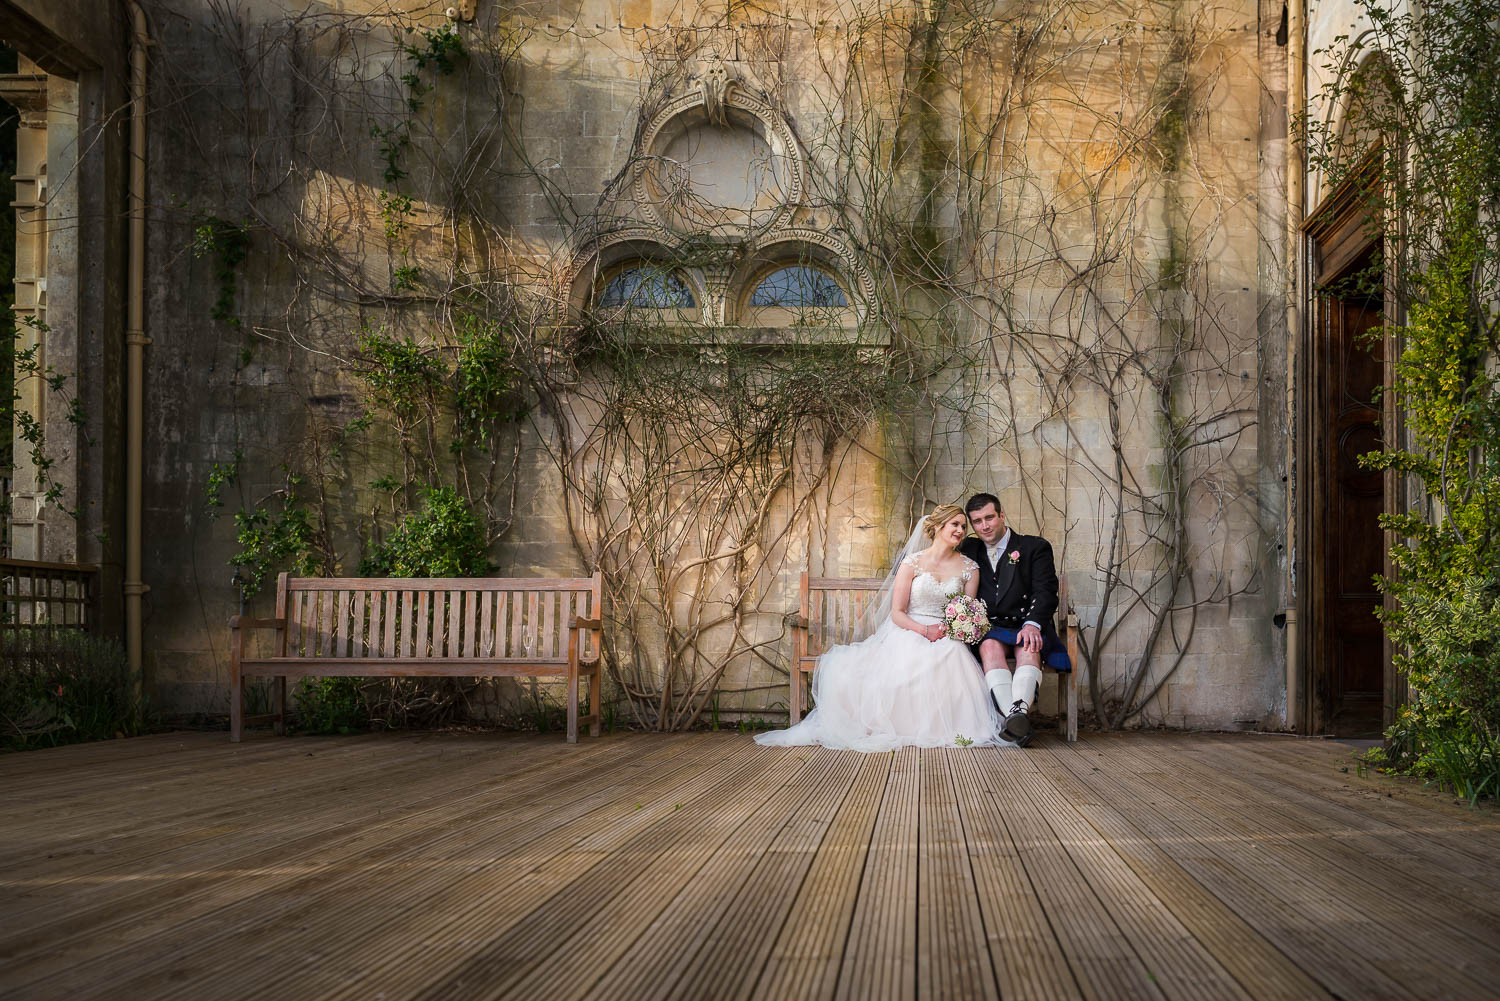 Orchardleigh Estate Wedding Photography, Somerset Wedding Photography, Walled Garden, Sunset, Perspective, Married Couple